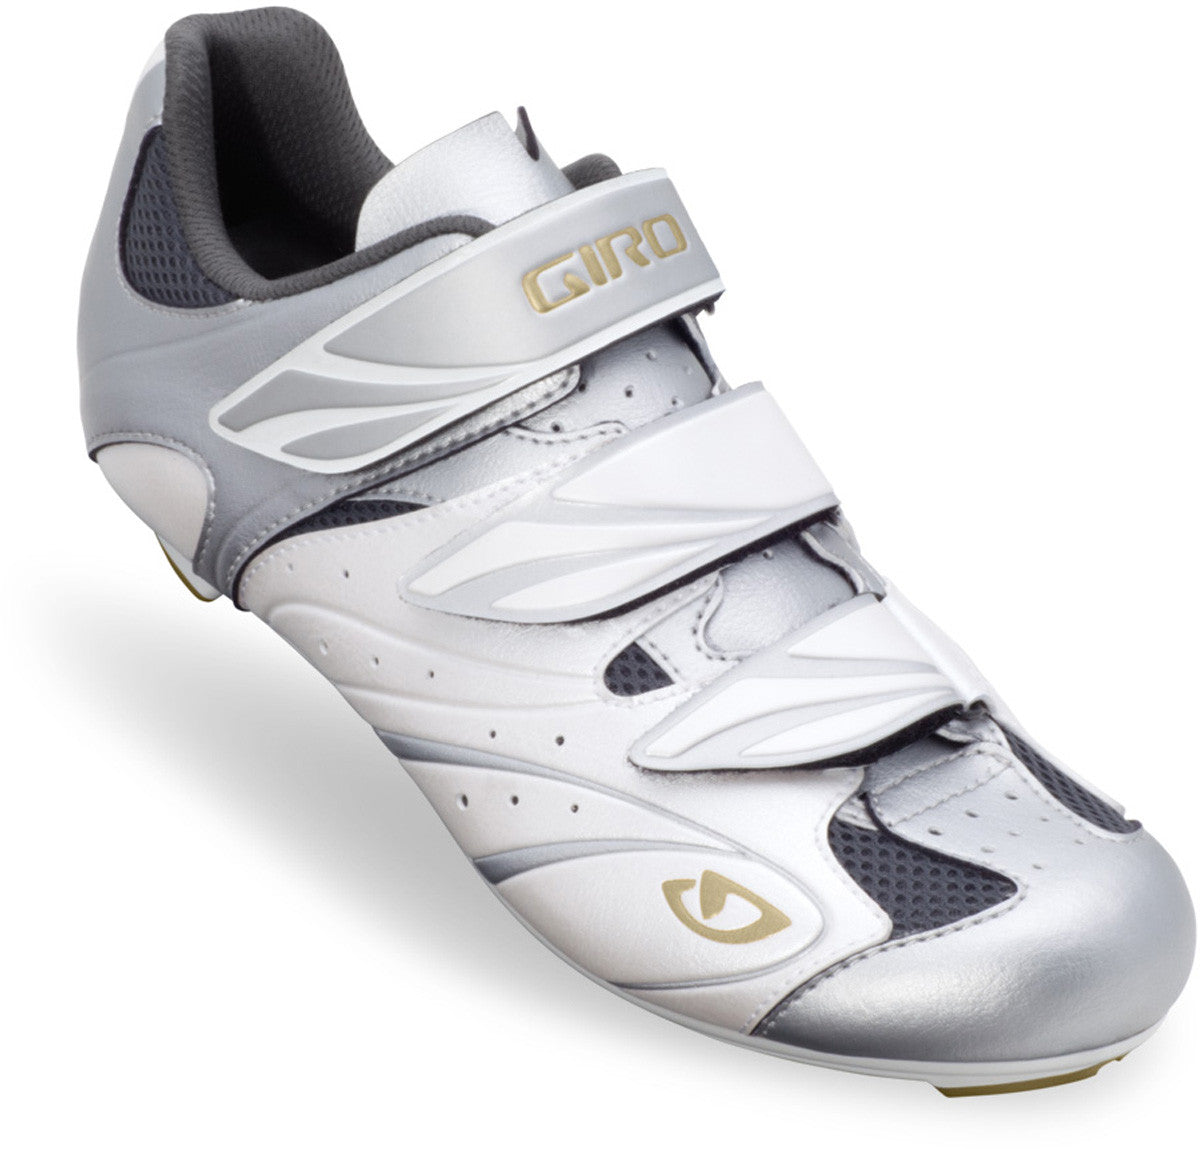 Giro Sante Women's Road Shoe white & silver